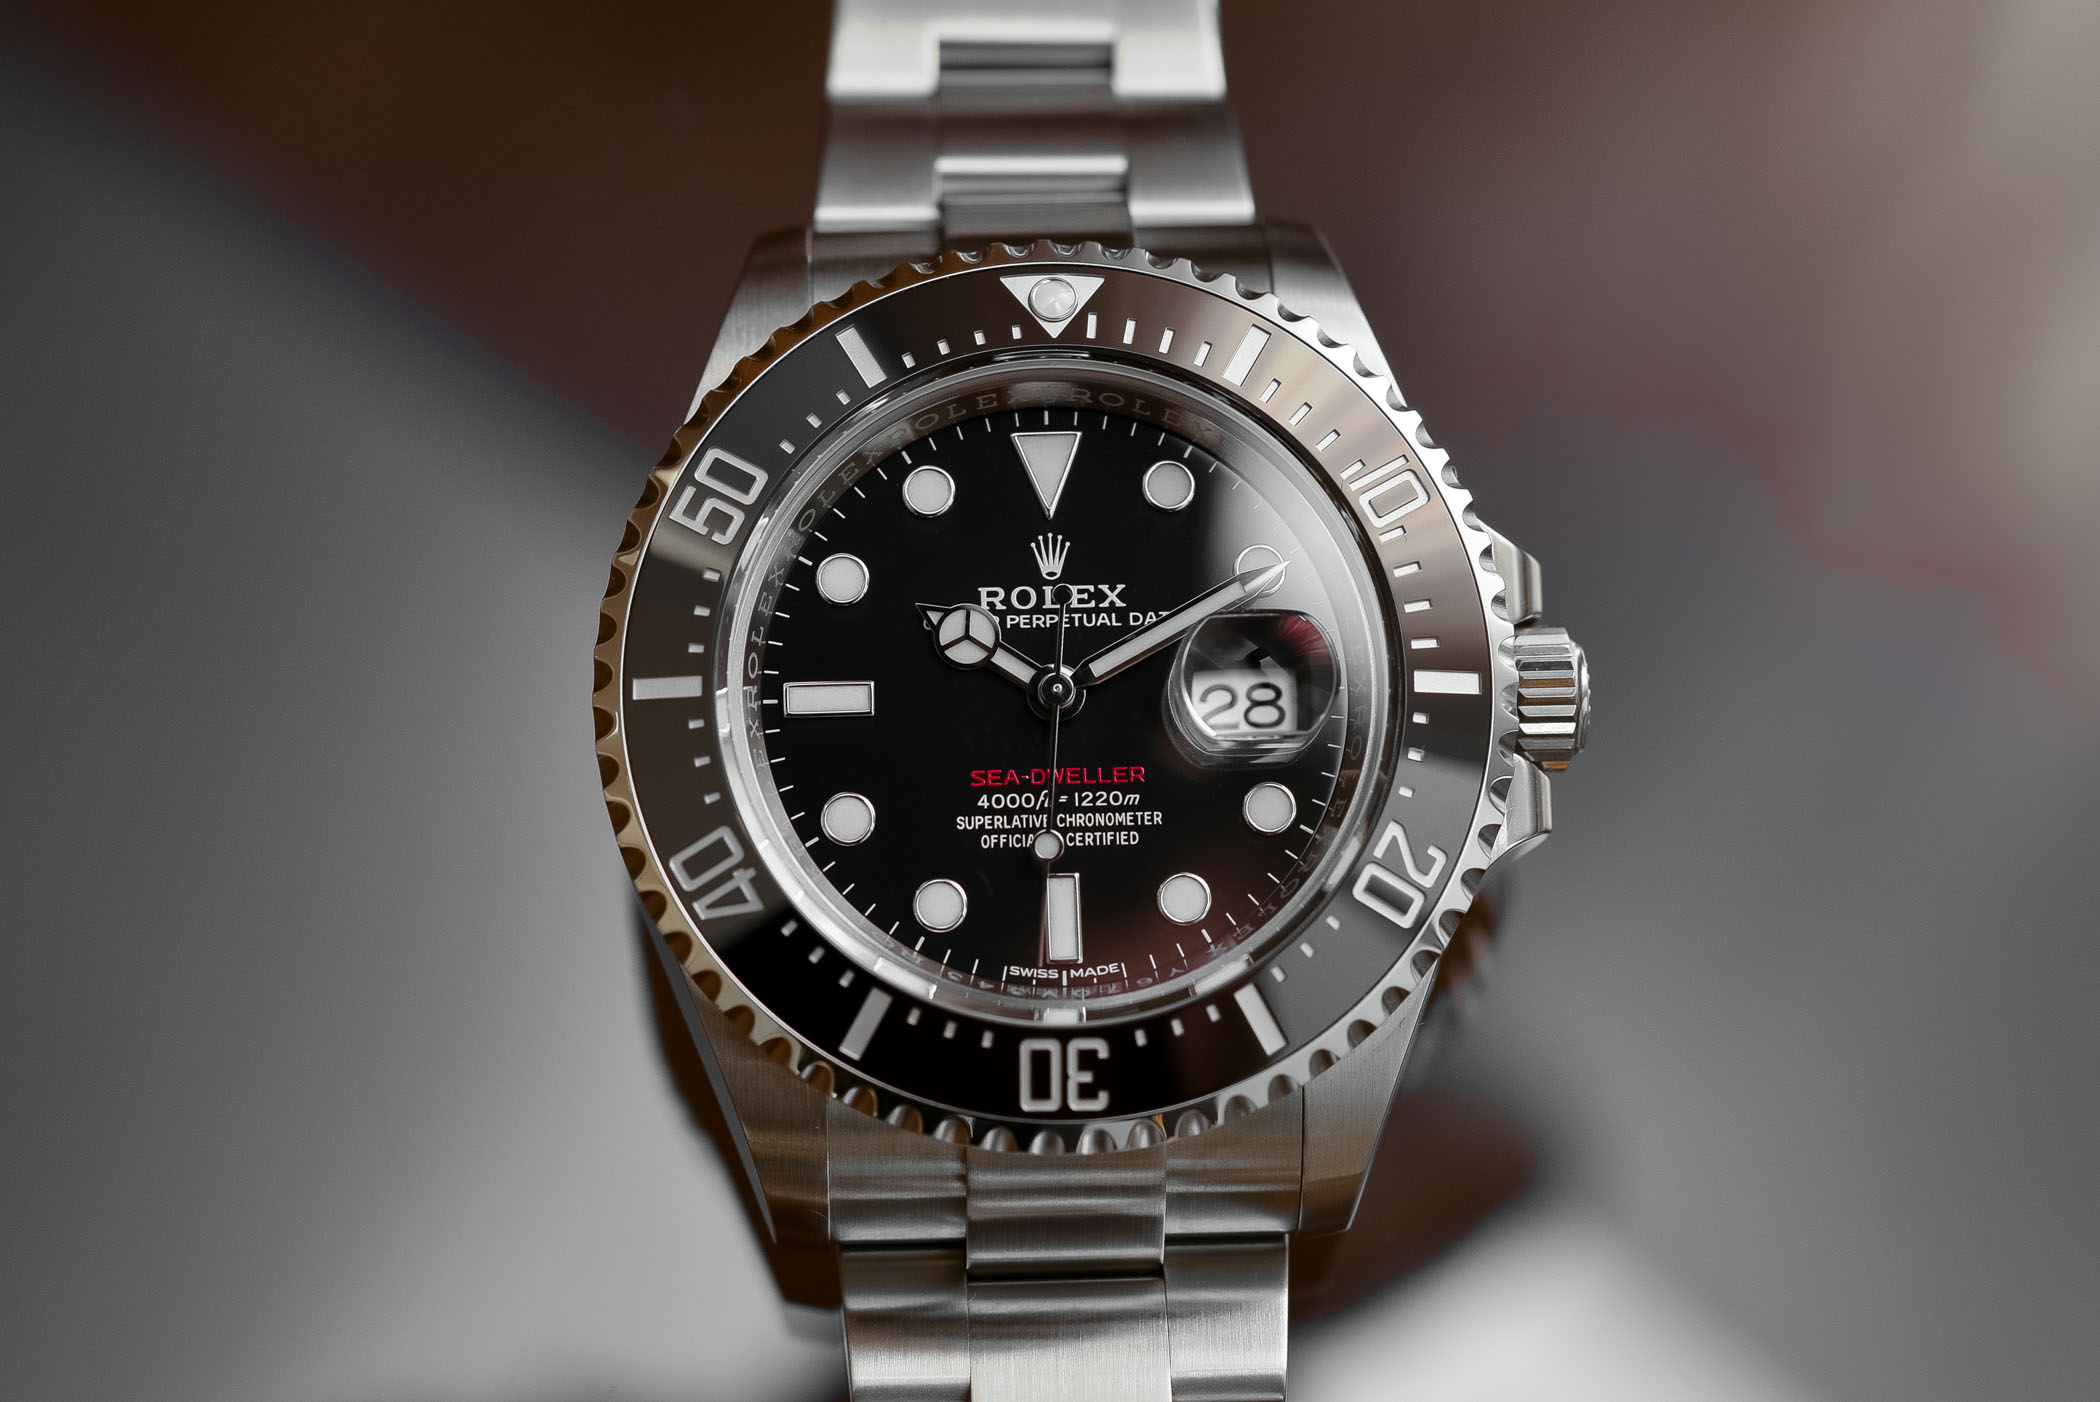 Rolex Sea-Dweller 43mm 126600 - Baselworld 2017 Review